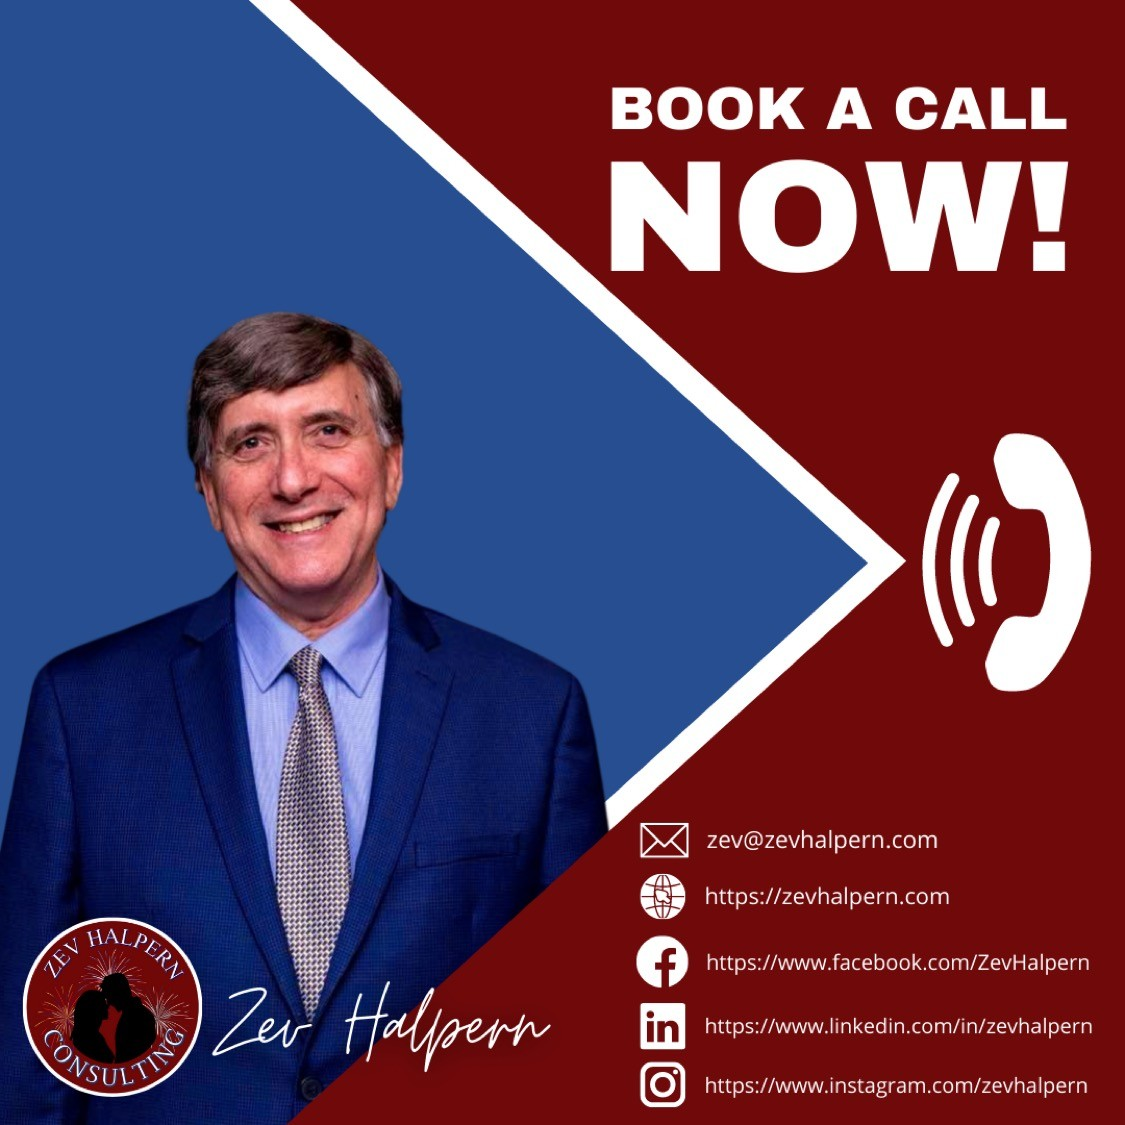 Book a Call Now